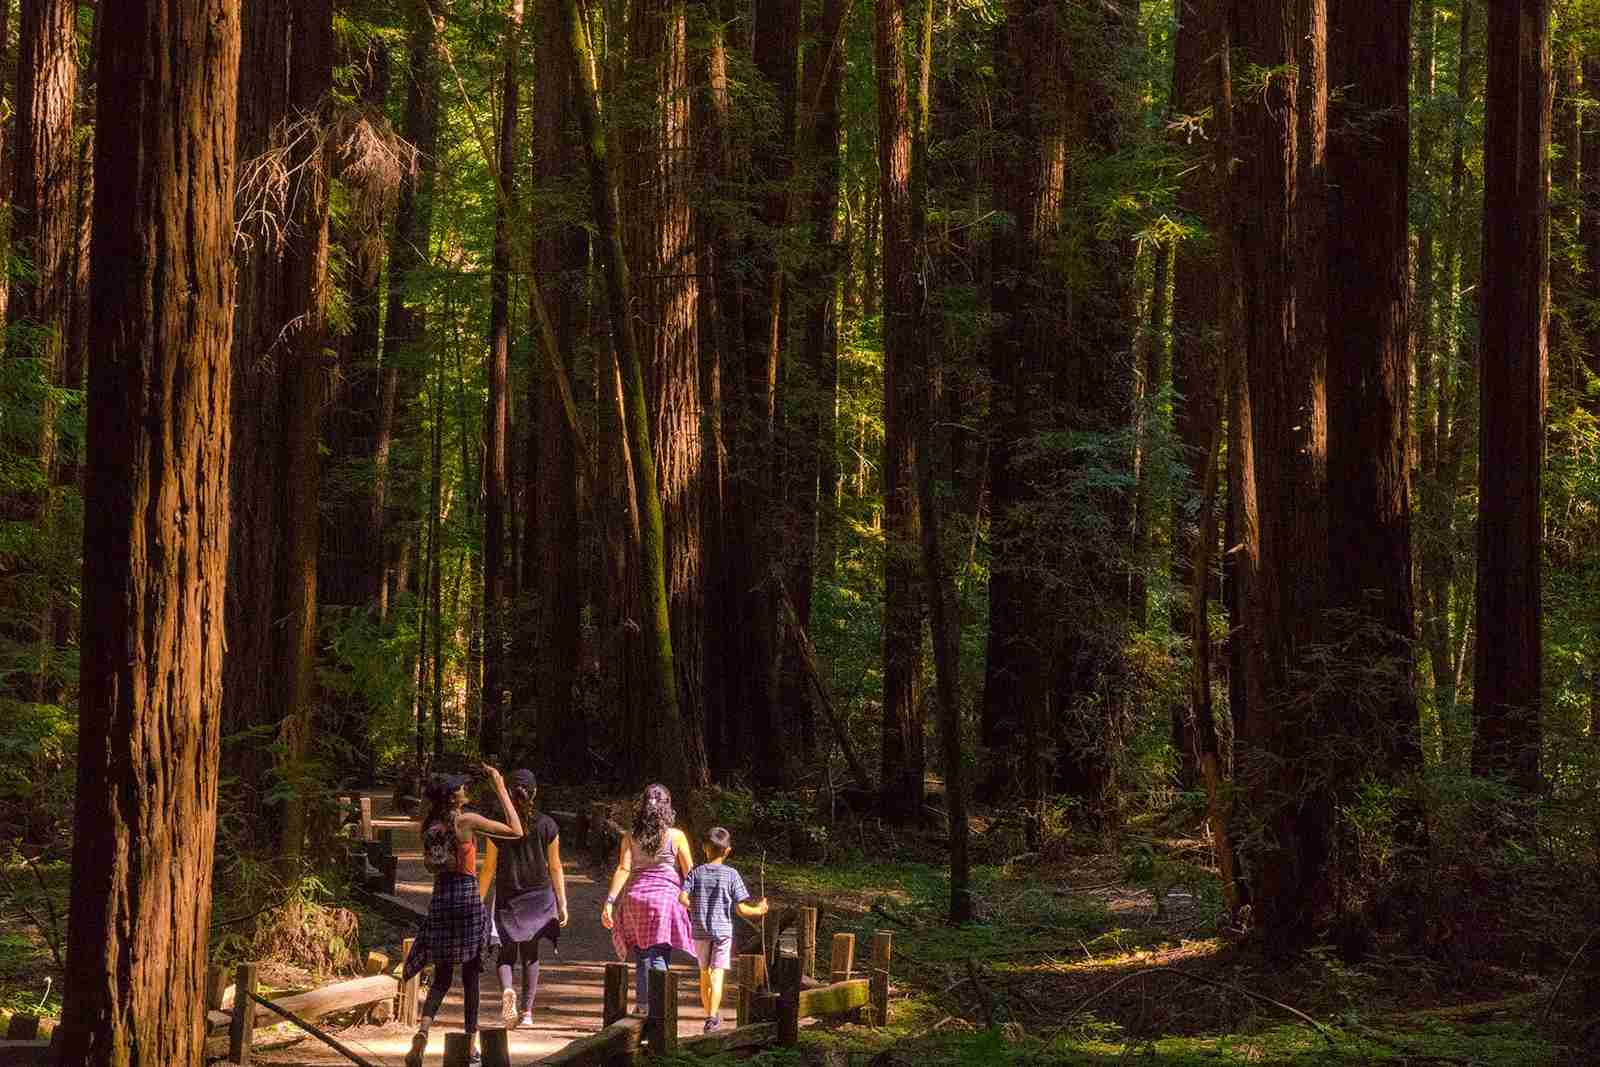 Armstrong Redwoods State Natural Reserve in Sonoma (Photo courtesy of Sonoma County Tourism)